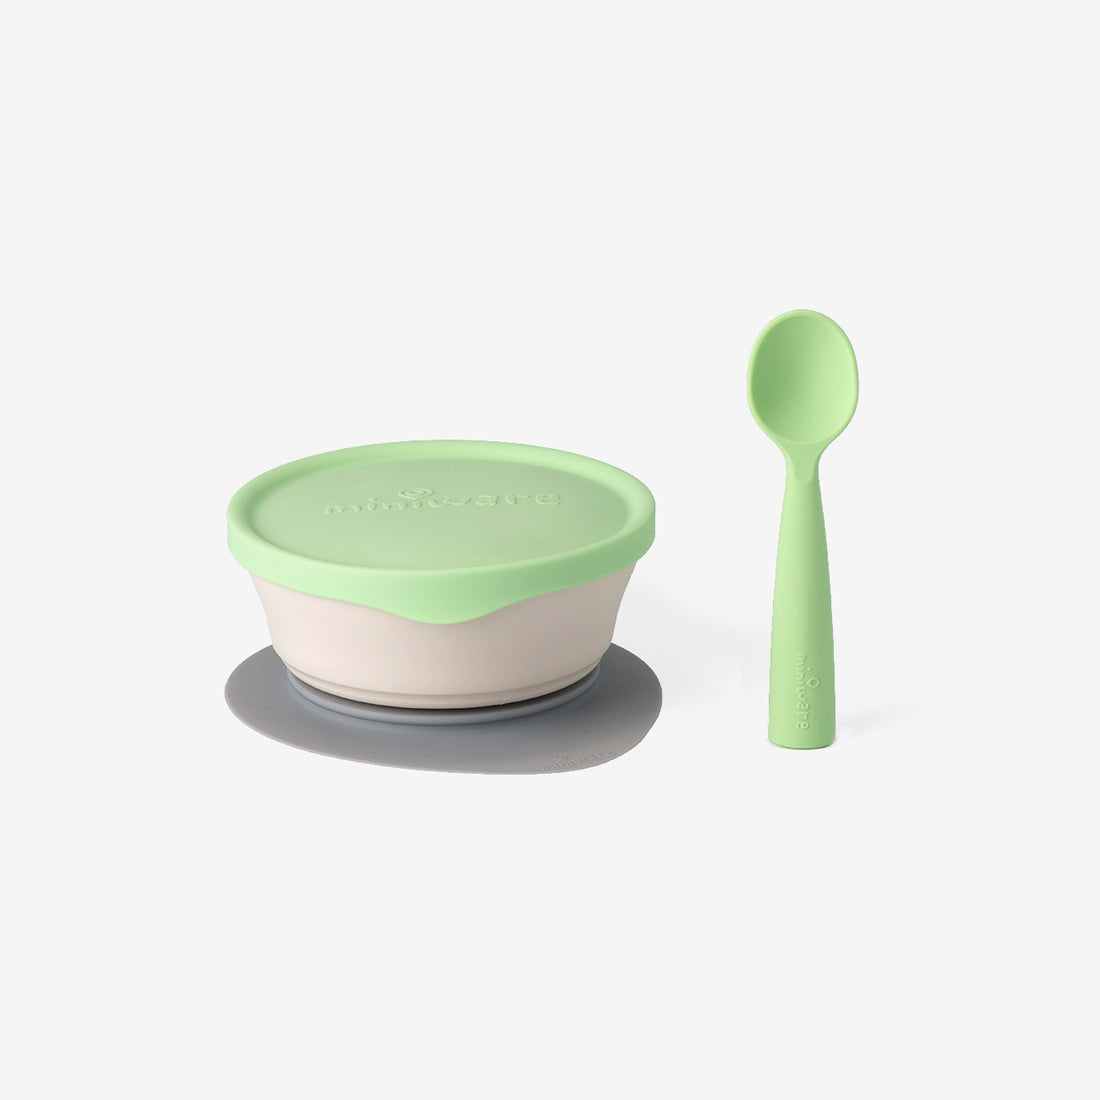 First Bites PLA Kid's Dish Set - Key Lime